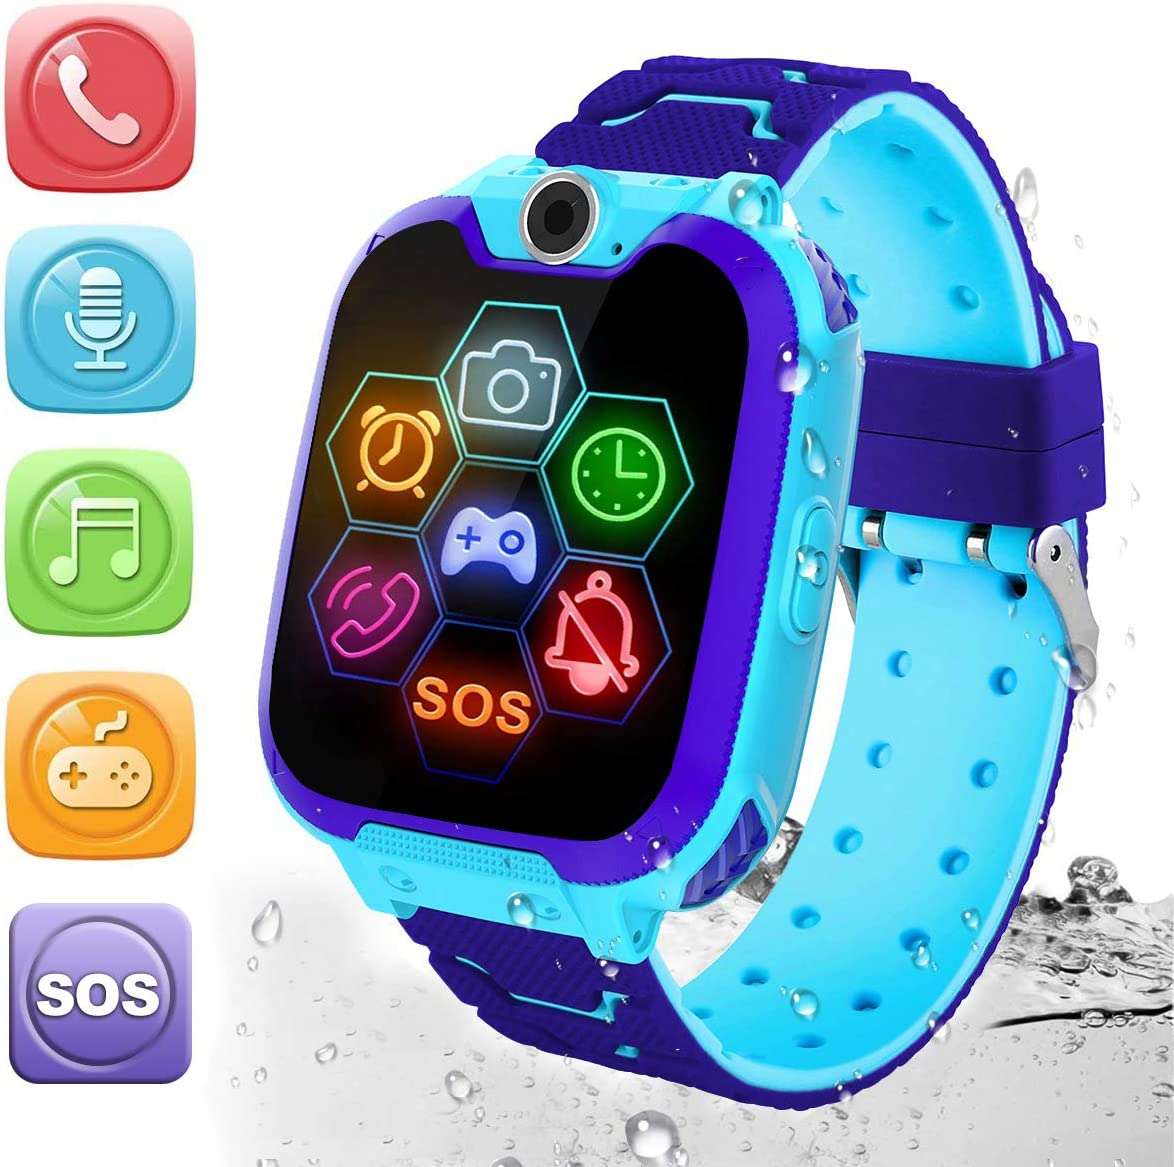 Top 18 Best Smartwatch For Kids (2020 Reviews & Buying Guide) 16